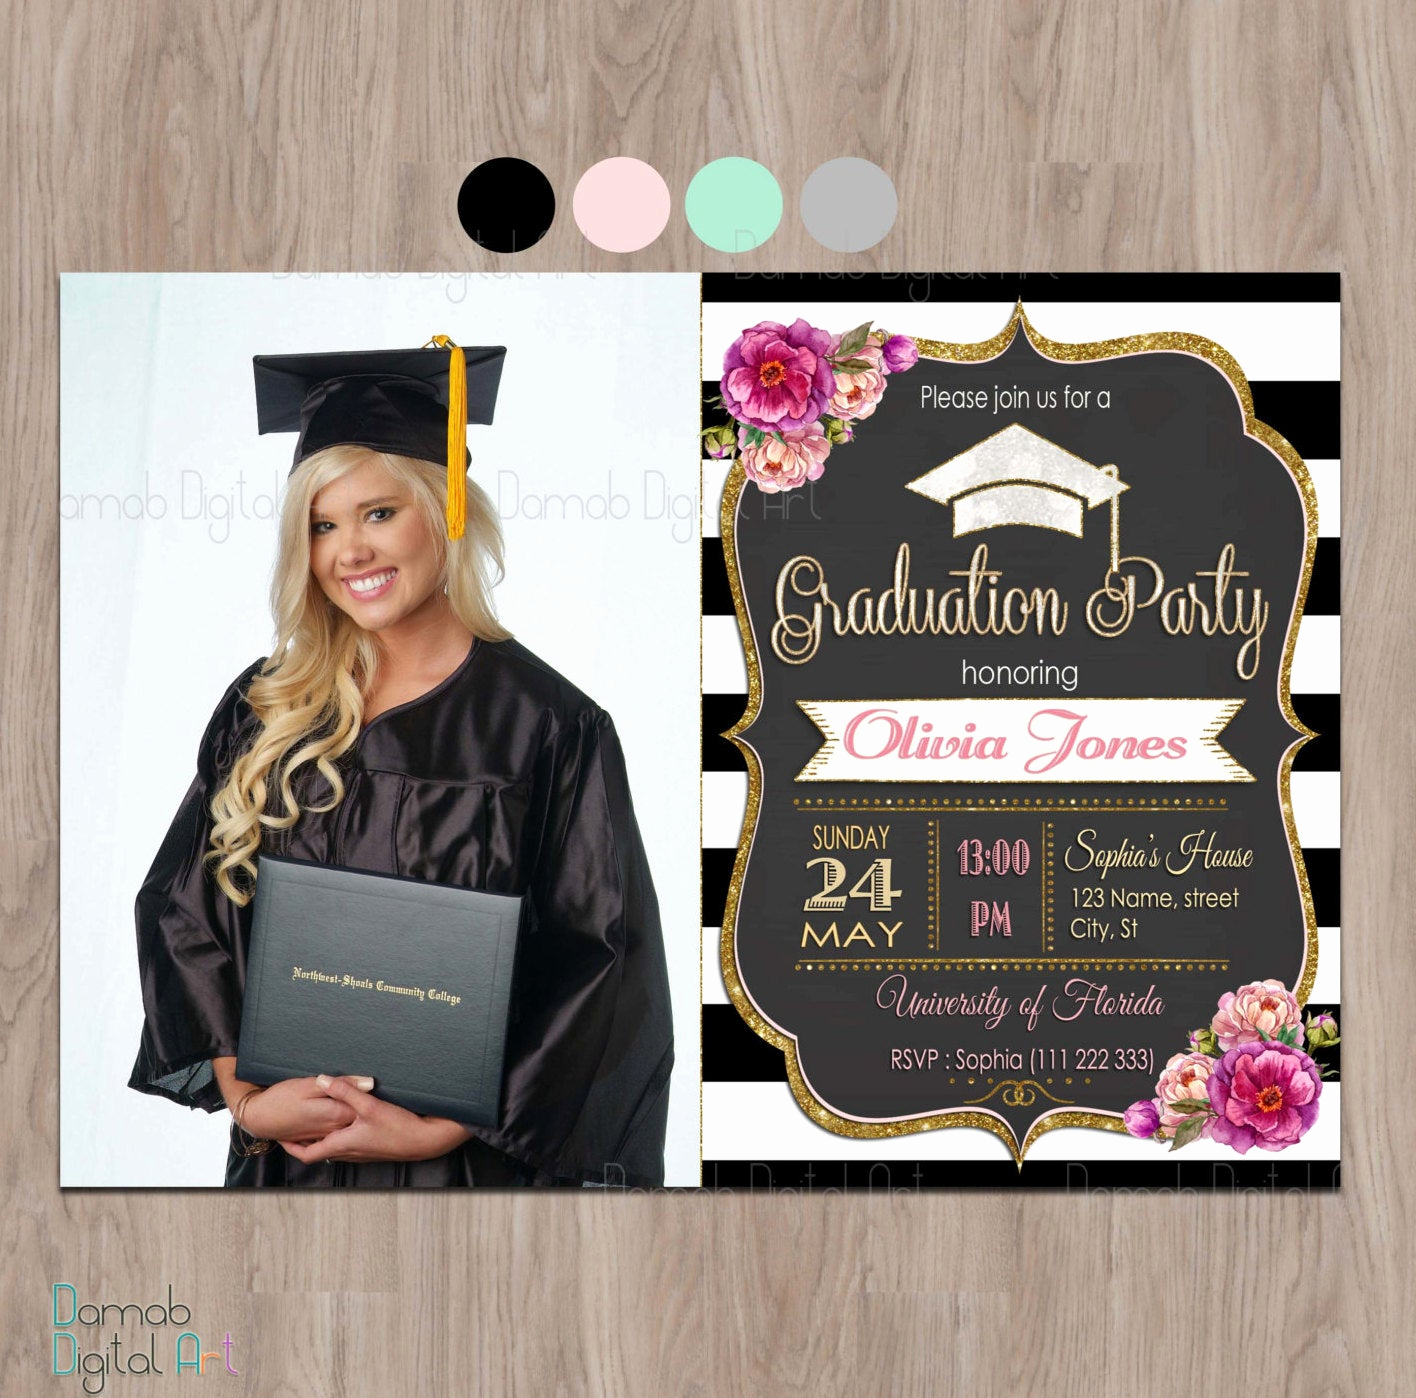 Invitation to Graduation Party Inspirational Graduation Invitation Graduation Party Invitation